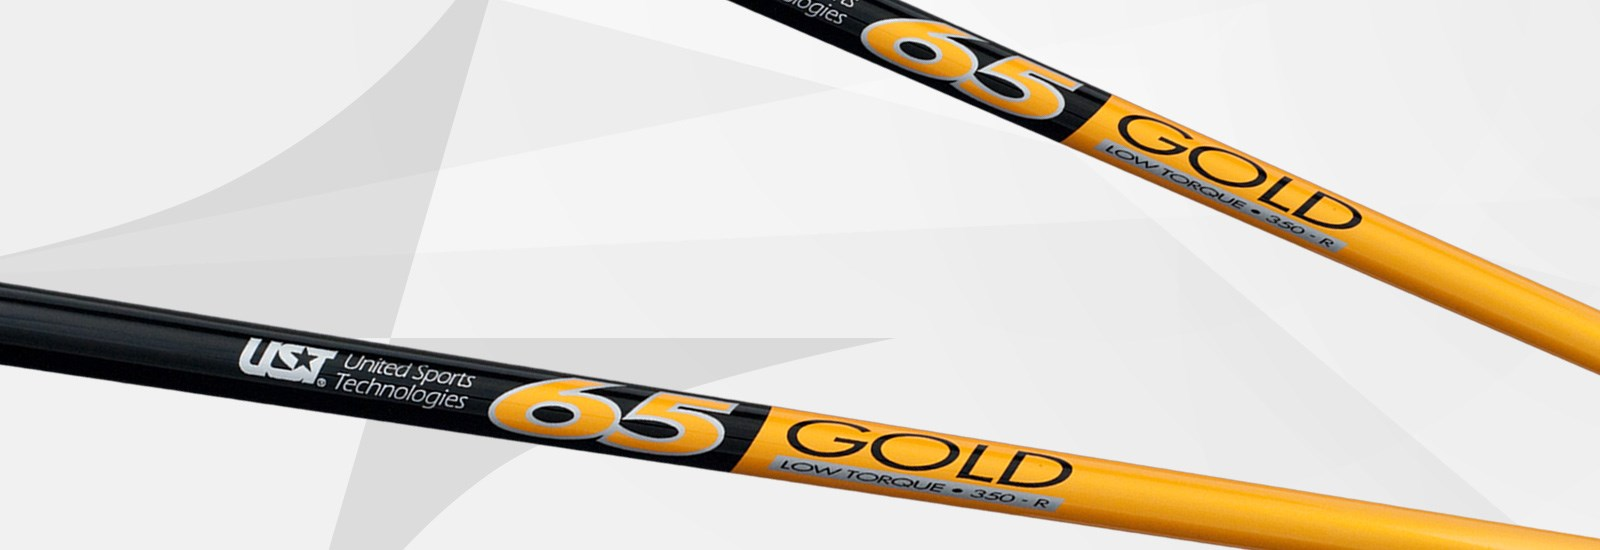 UST Mamiya Gold Golf Shafts